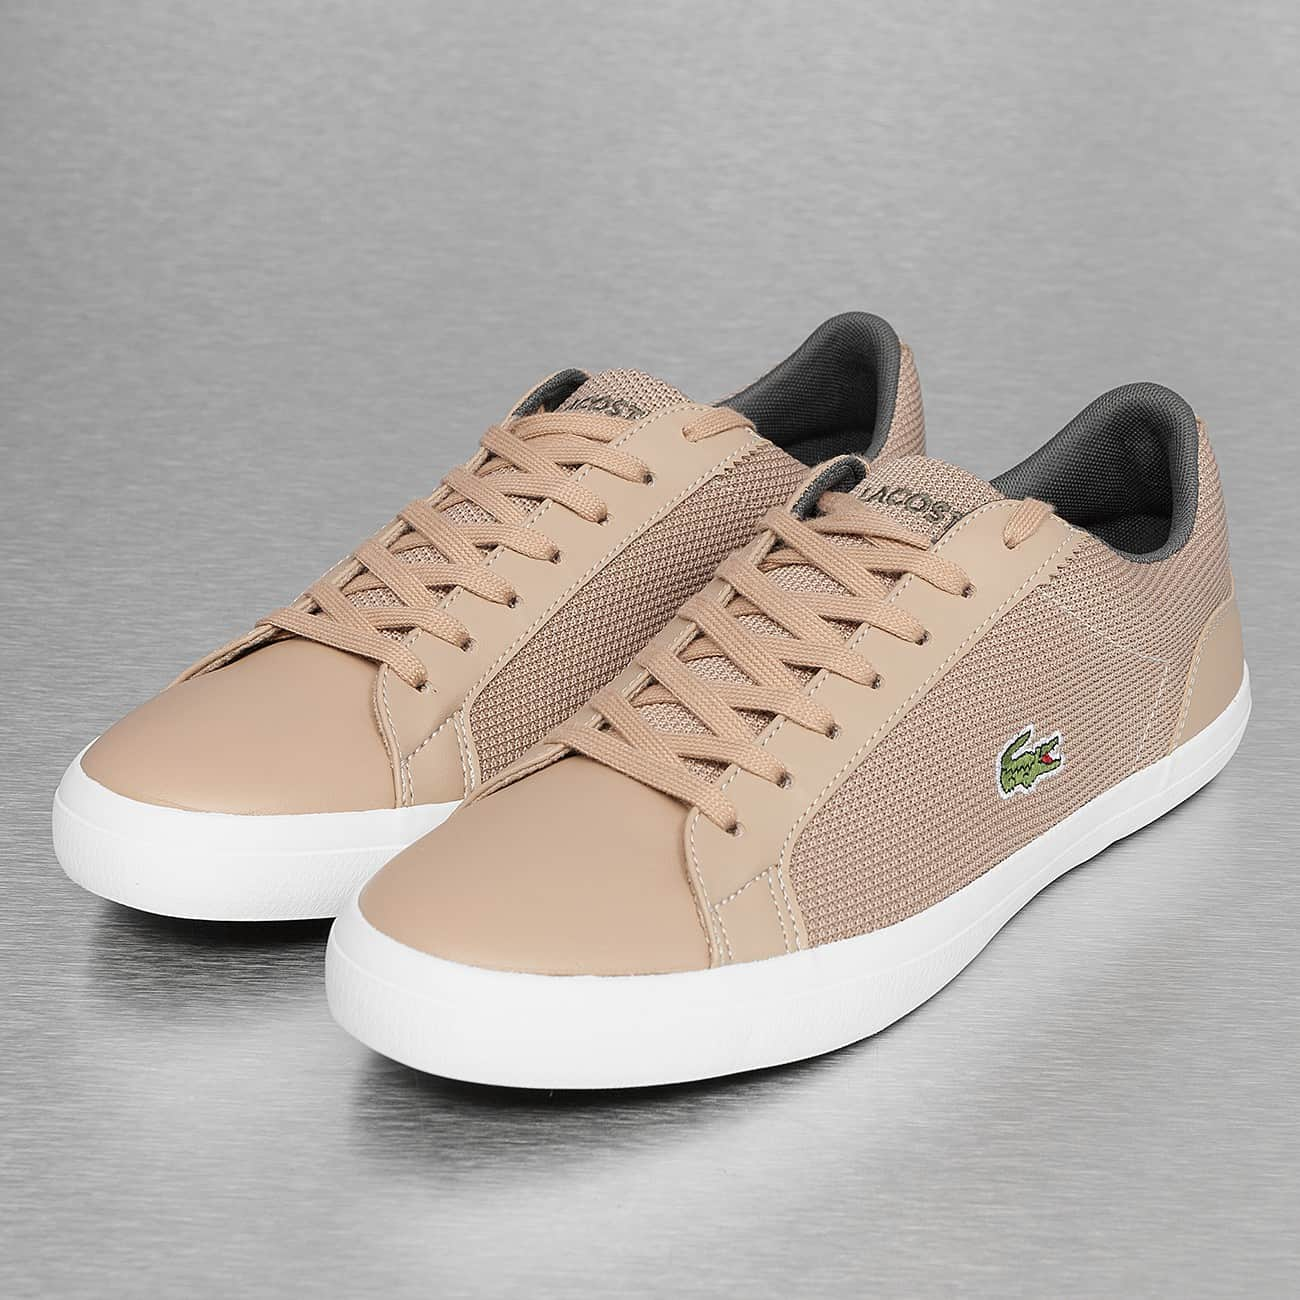 Beige Lacoste Chaussure Homme Chaussure Lacoste CtrBoQhxds